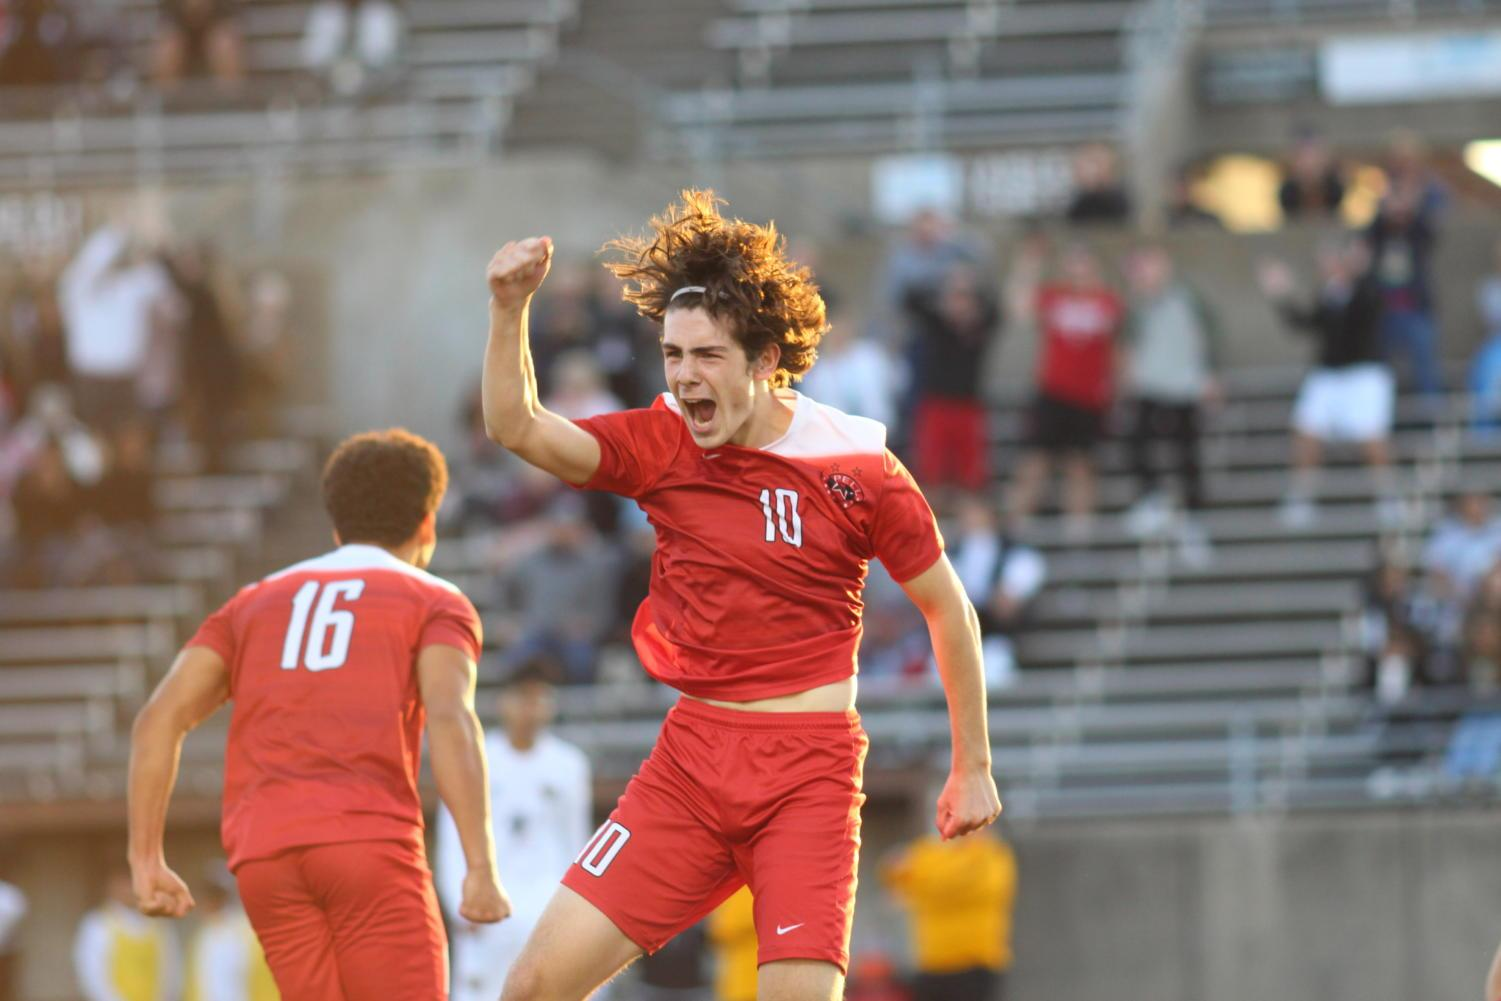 Coppell Cowboys senior midfielder Wyatt Priest jumps with joy after assisting a goal during the second half of the game on March 30 at John Clark Stadium in Plano. The Coppell Cowboys defeated the Garland Owls, 4-0, in the bi-district round of the Class 6A Region I playoffs.